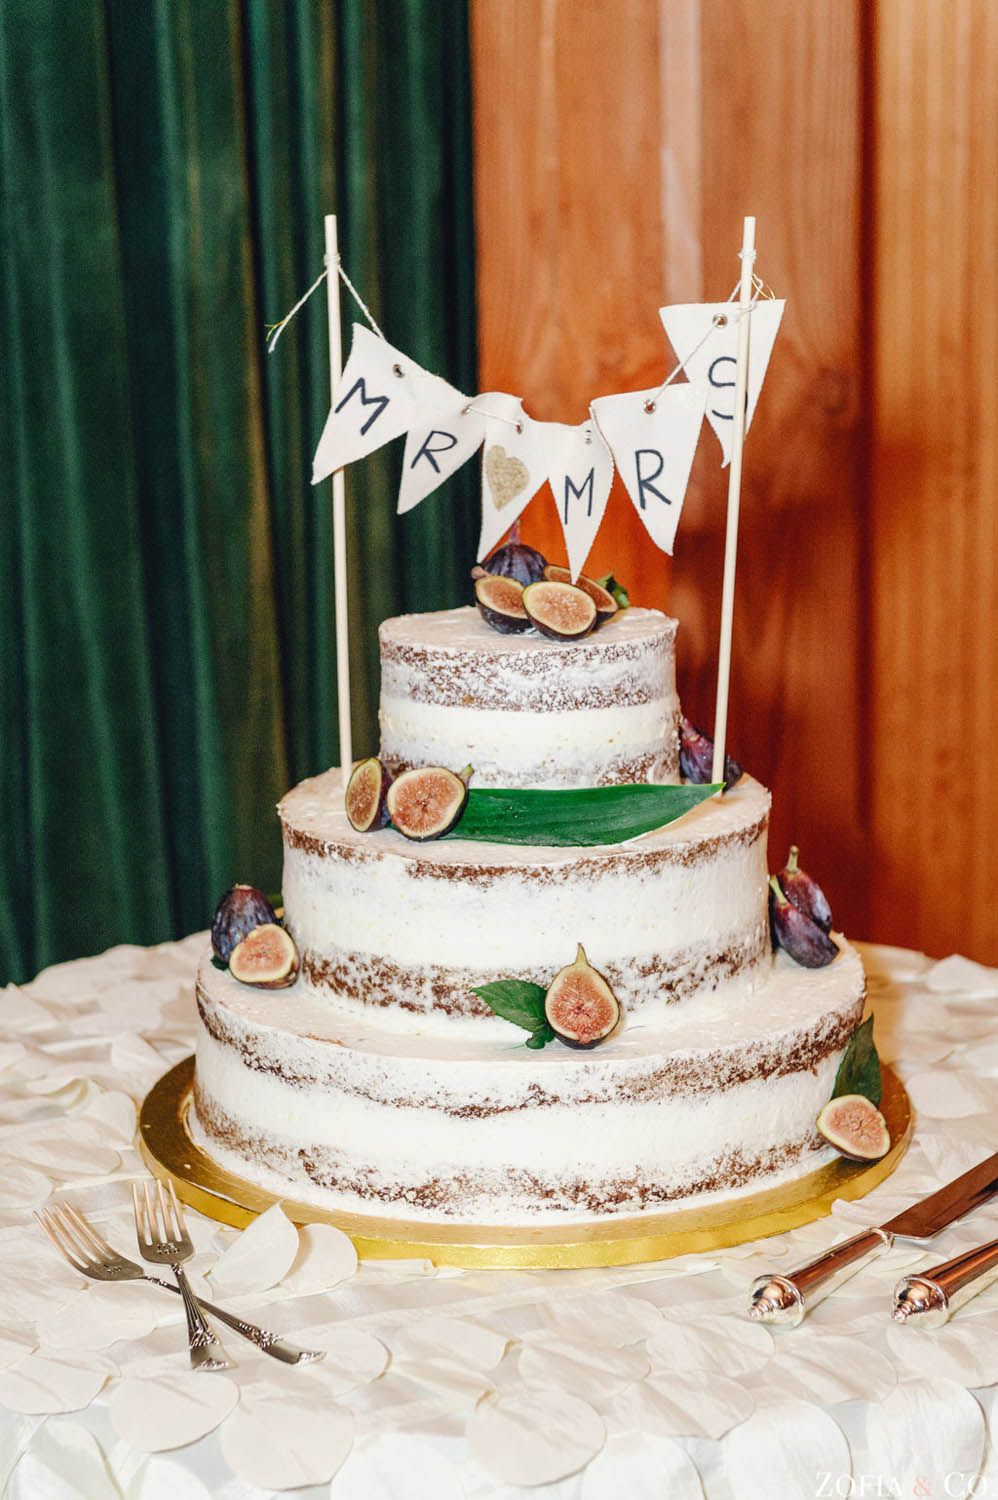 cake-wedding-planning-and-design.jpg